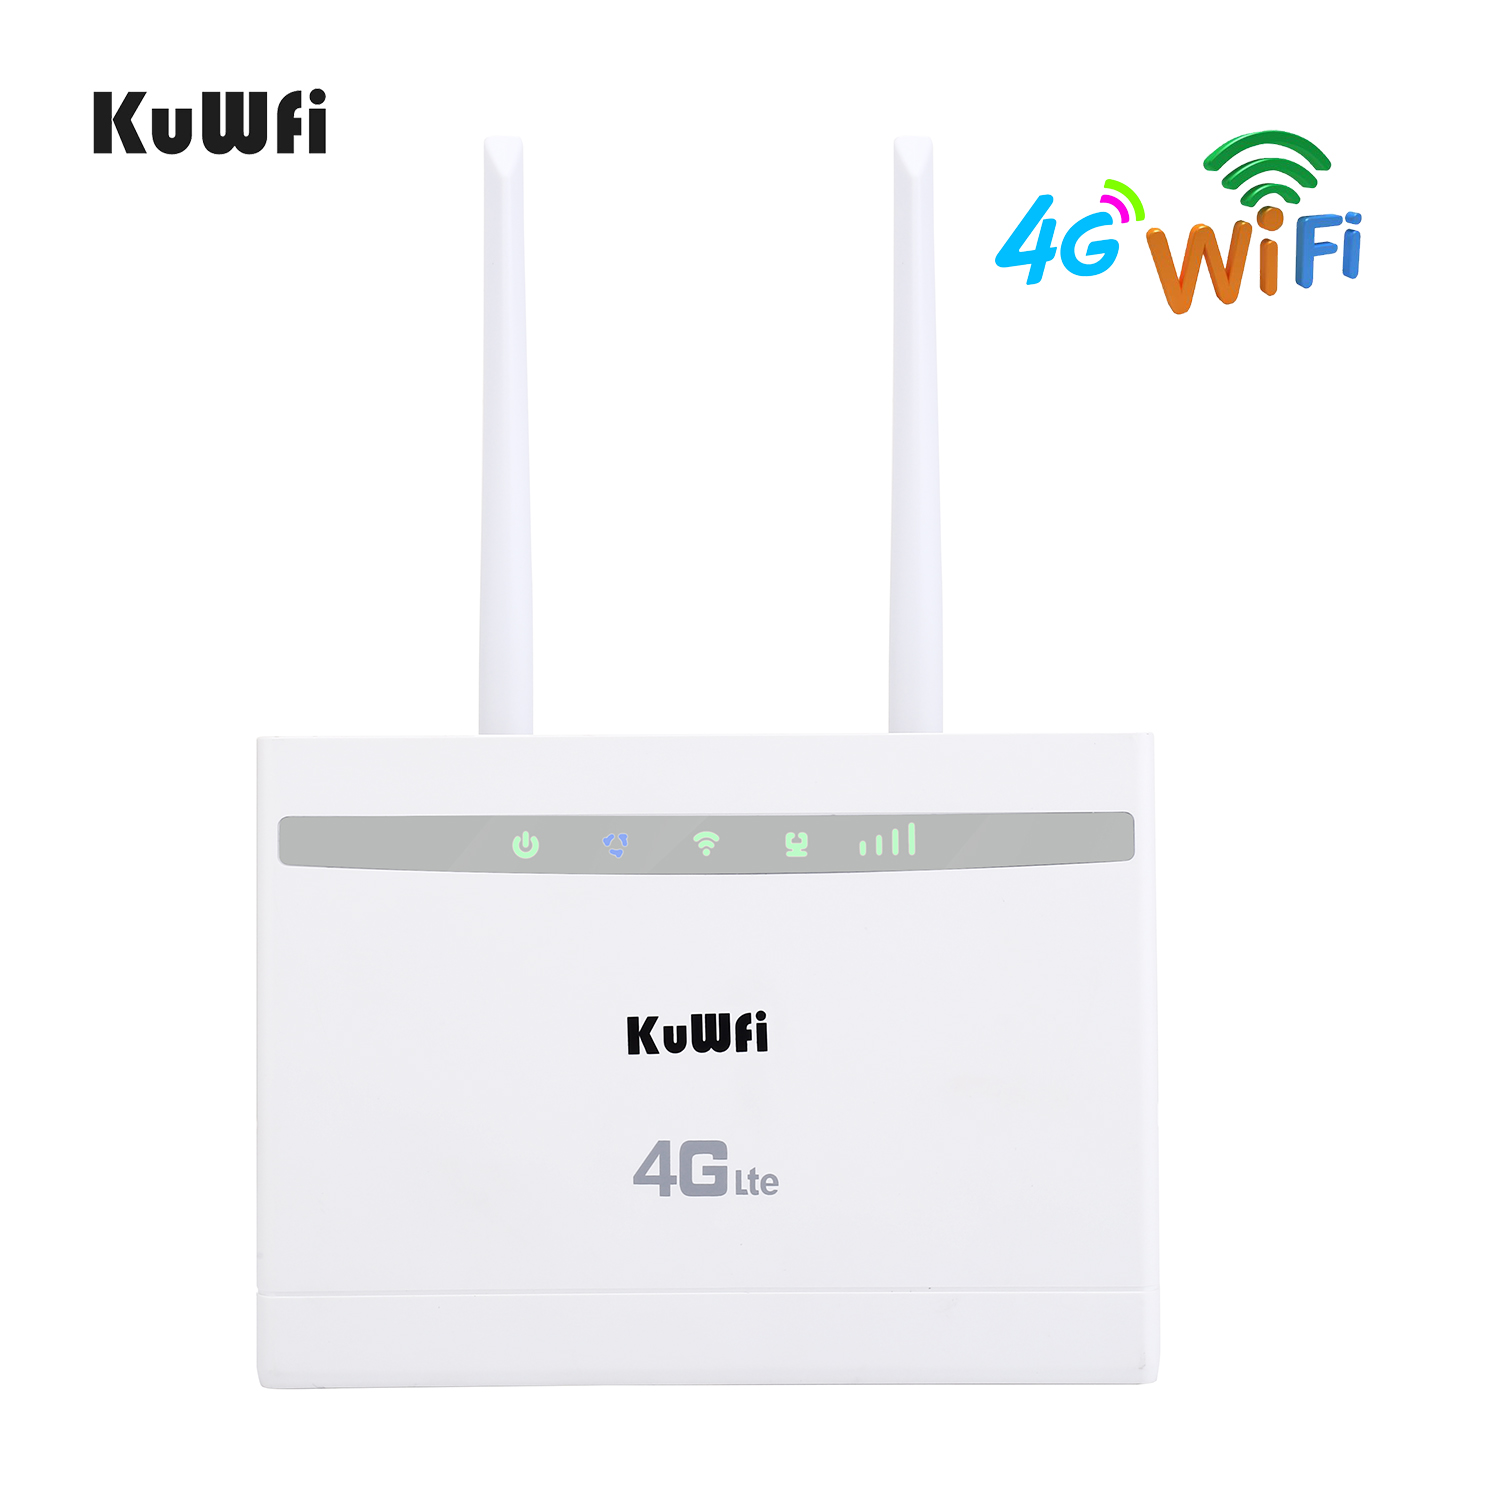 KuWfi 4G LTE Router 150Mbps Wireless CPE Router 3G/4G SIM Card Wifi Router Support 4G to Wired Network up to 32 Wifi Device-in 3G/4G Routers from Computer & Office